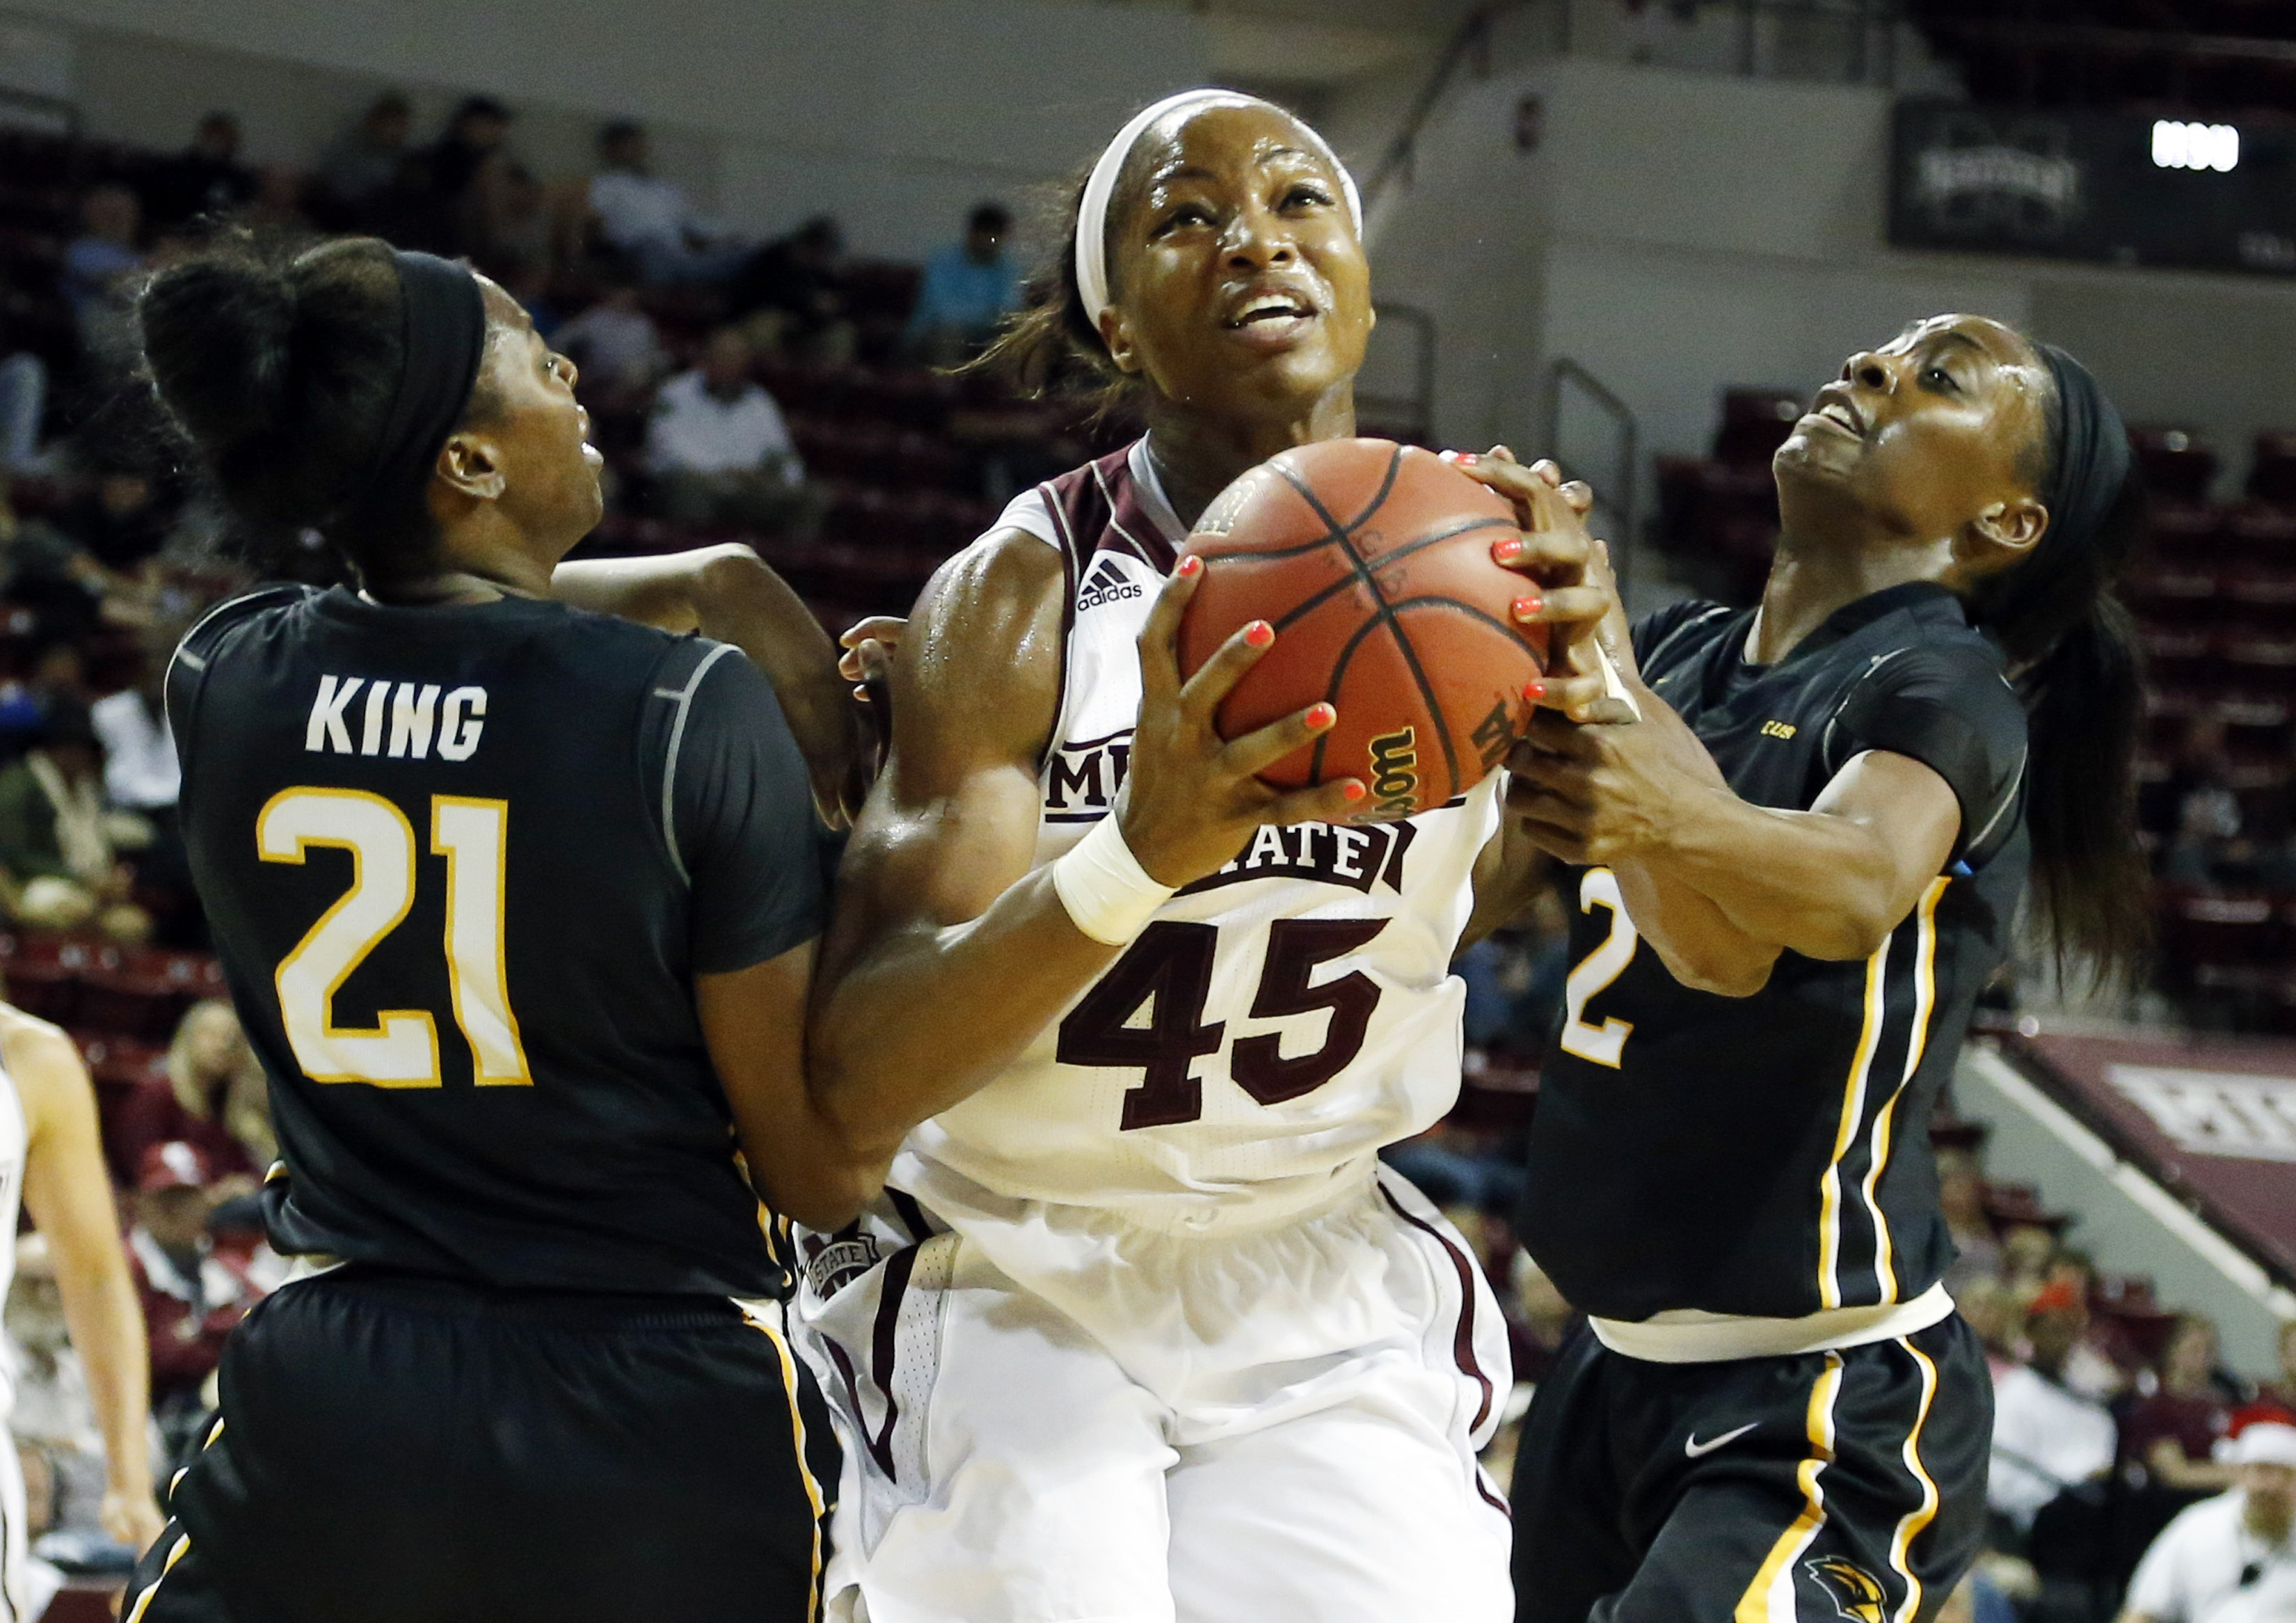 Mississippi State center Chinwe Okorie (45) attempts a layup between Southern Mississippi guard Jayla King (21) and forward Lashyra Cotton (2) in the first half of an NCAA college basketball game in Starkville, Miss., Wednesday, Dec. 16, 2015. (AP Photo/R